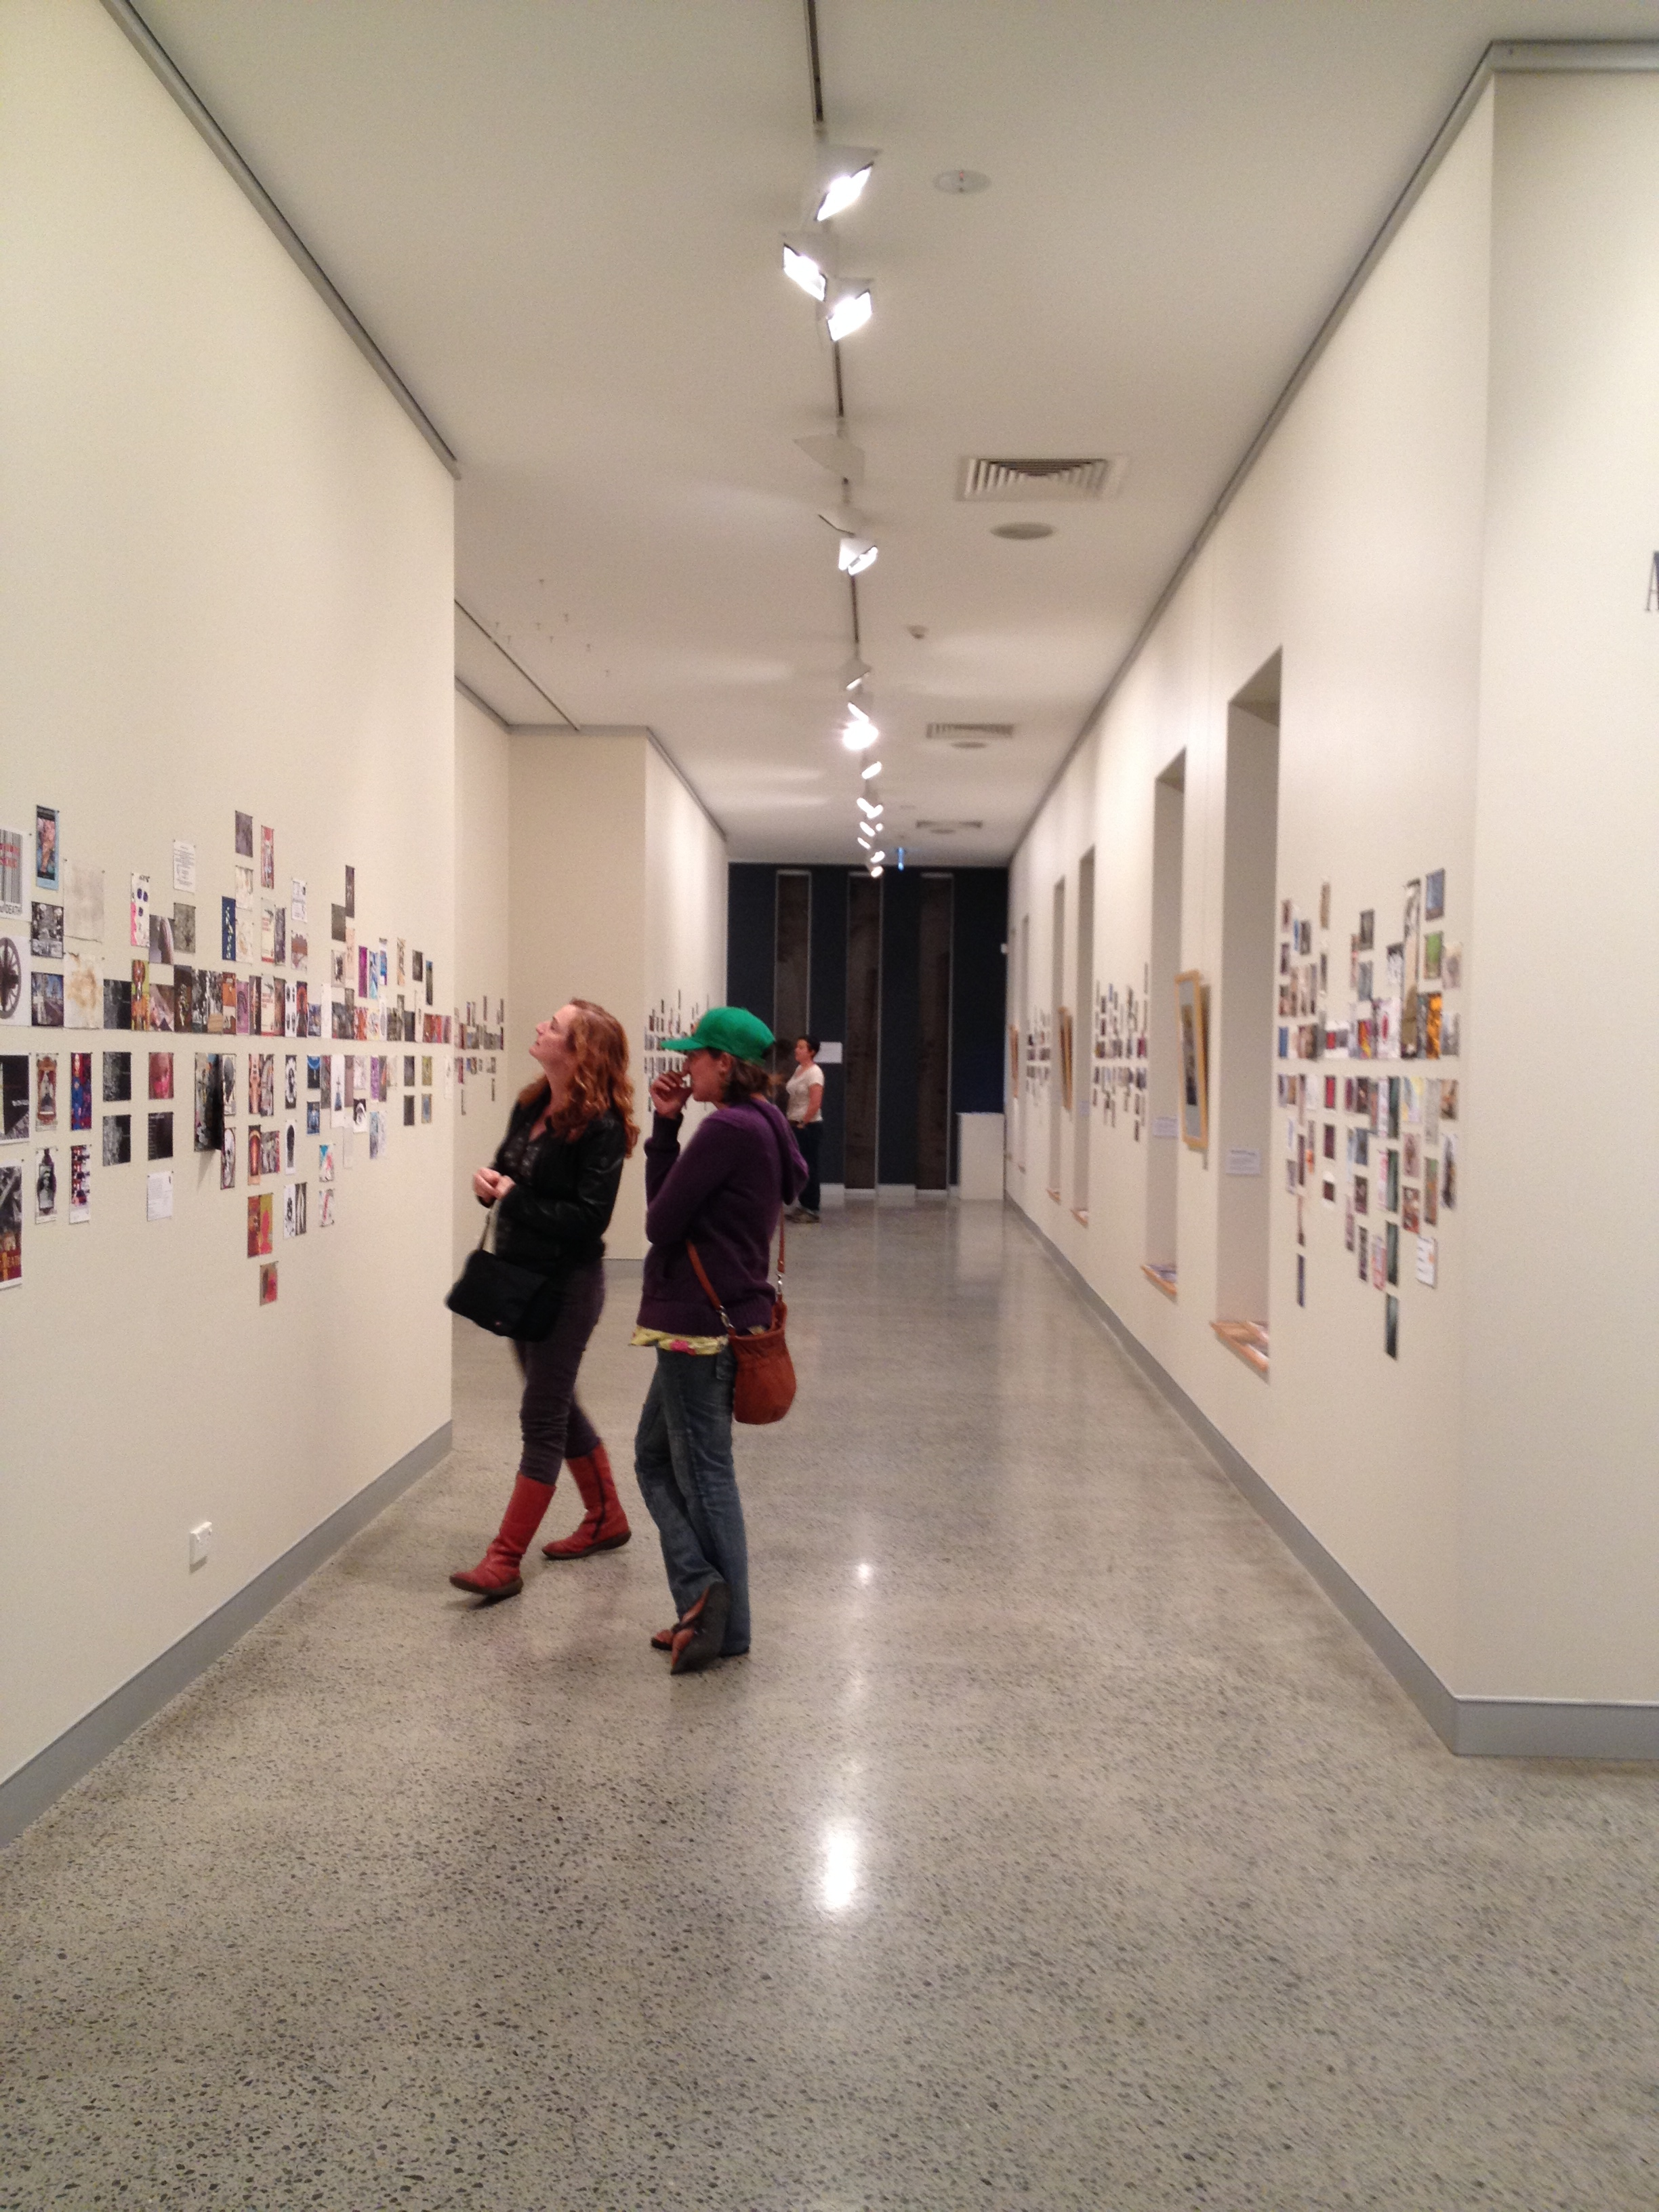 Installation shot of A Book About Death, curated exhibition at Tweed regional Gallery